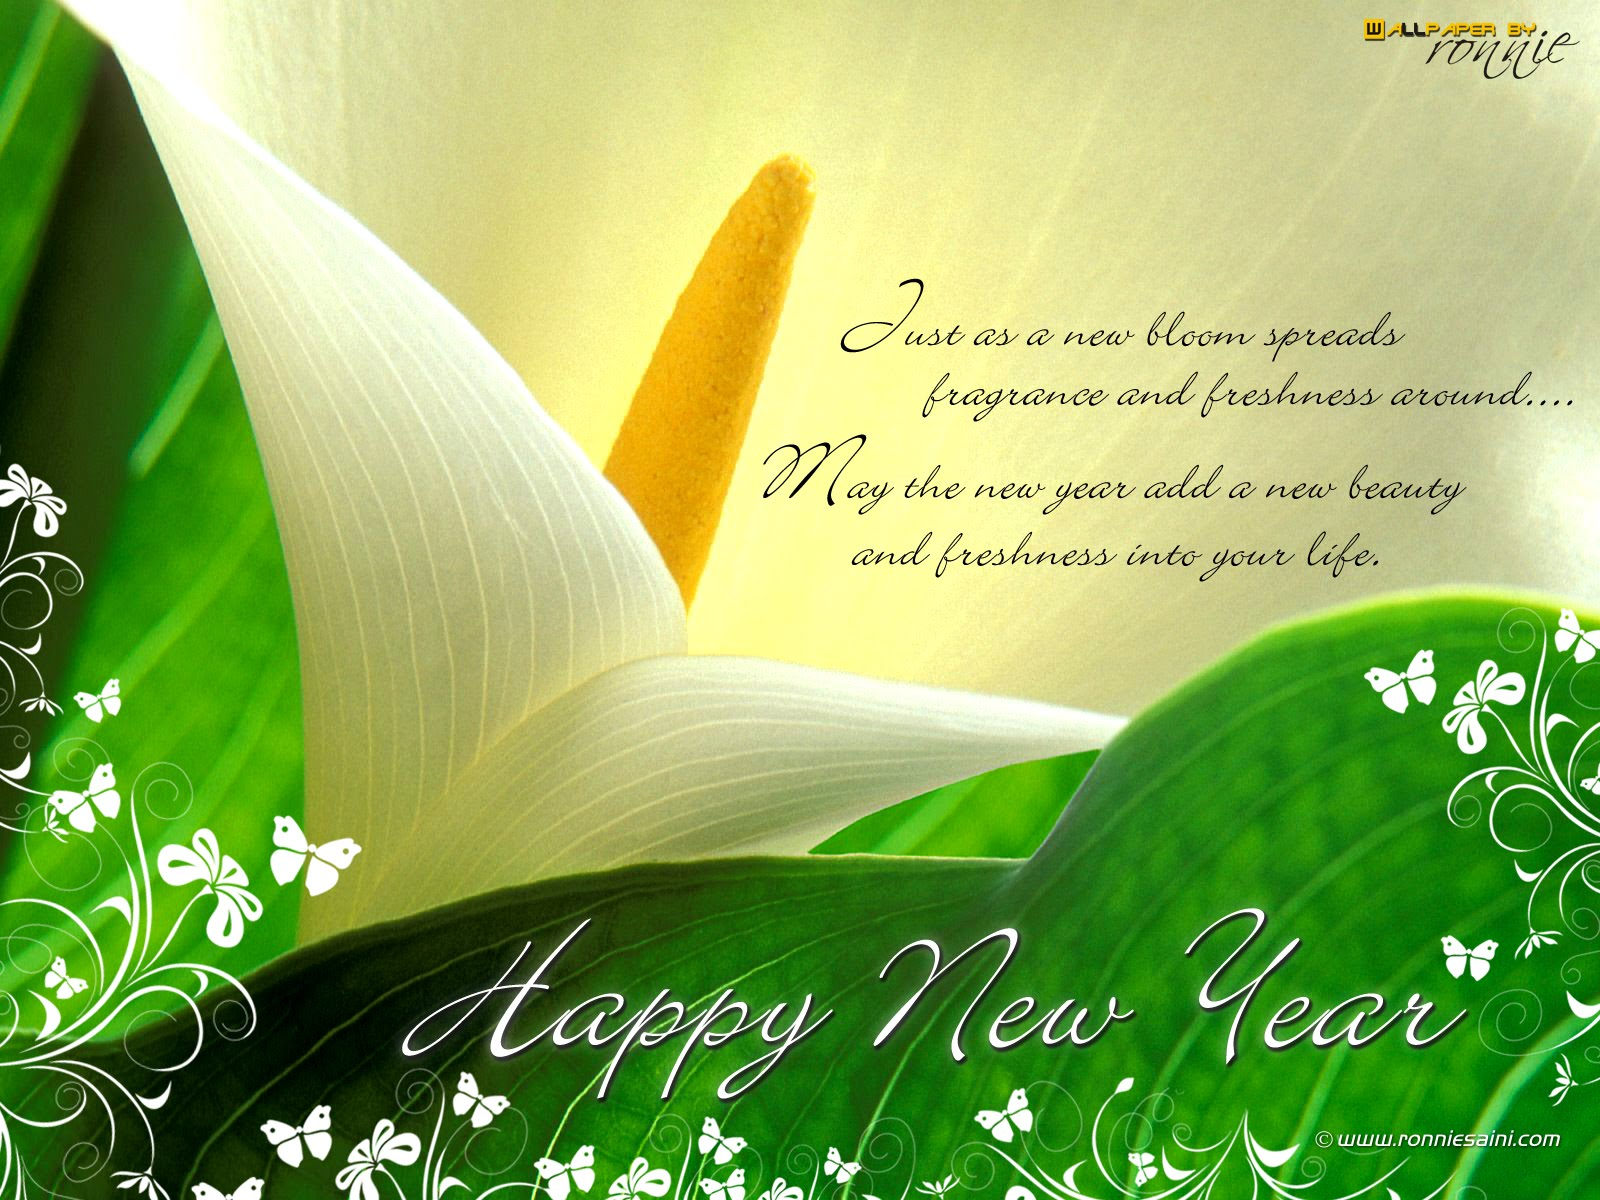 Happy New Year Wishes.11 Christian Chinese New Year E Cards 2014